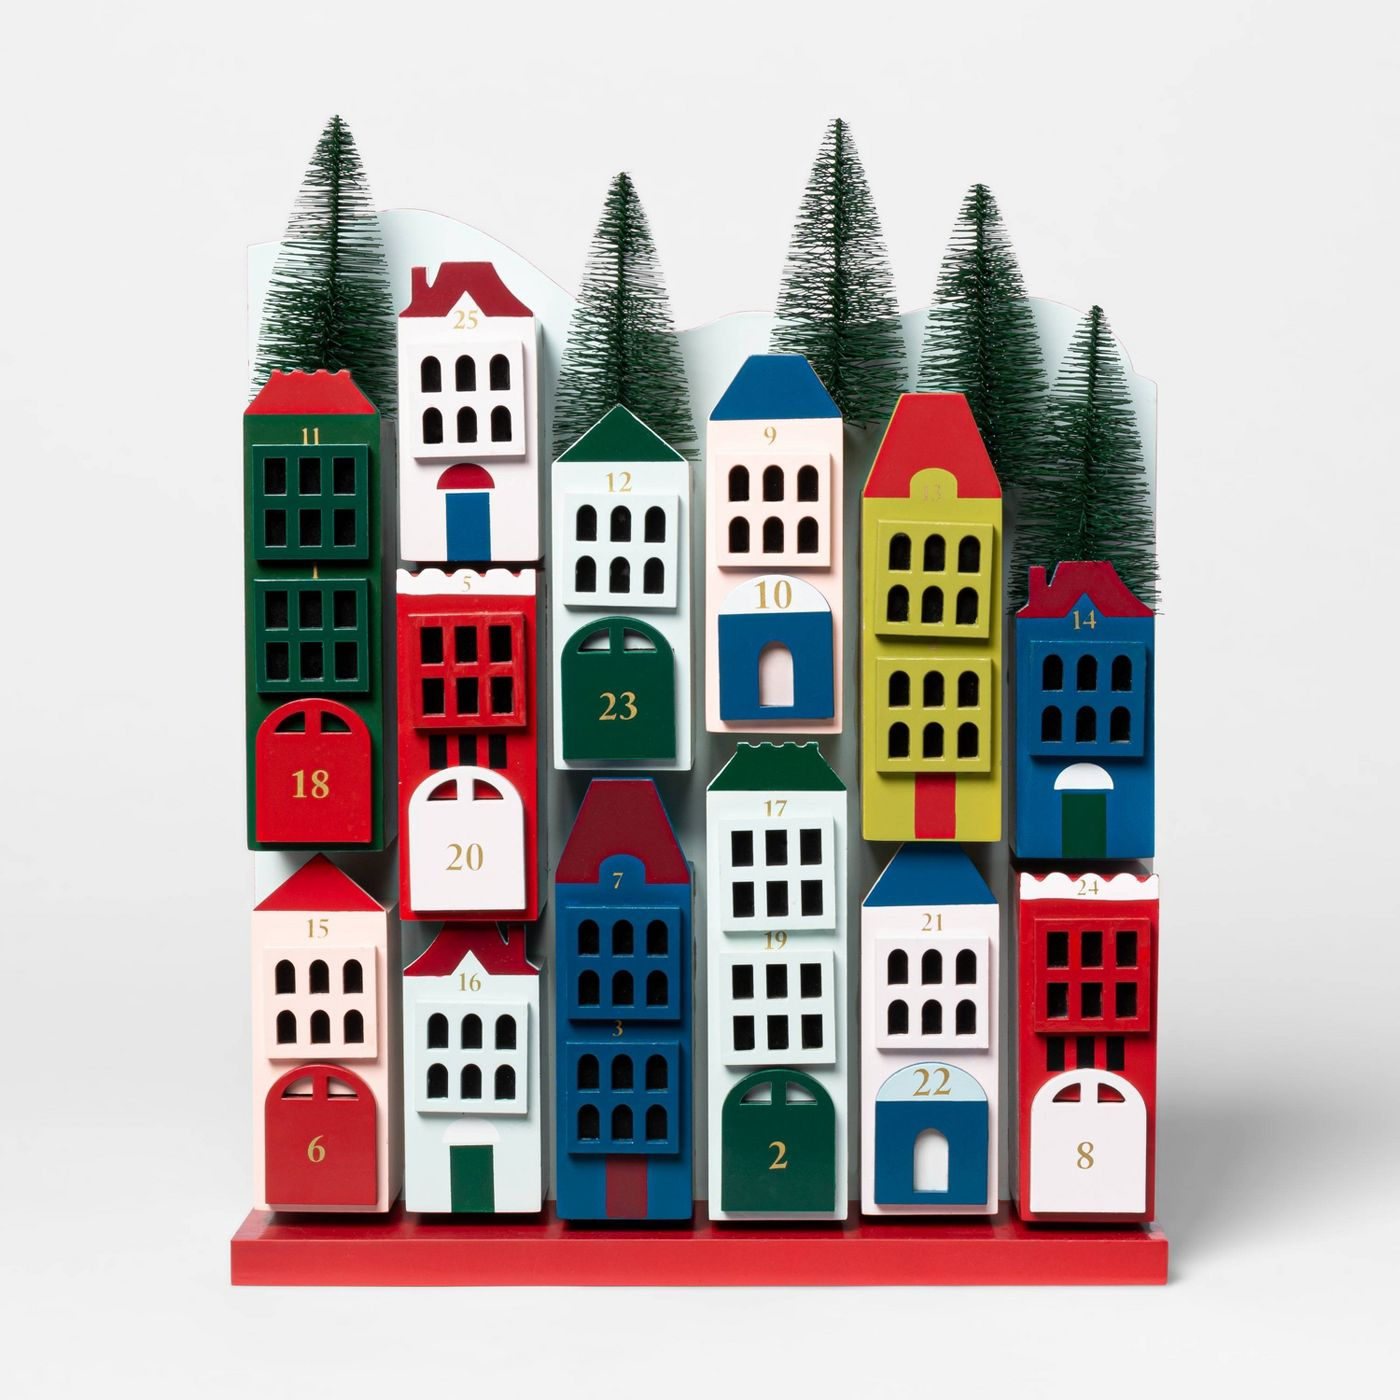 Wooden Advent Christmas village with decorative bottlebrush trees lining the top.